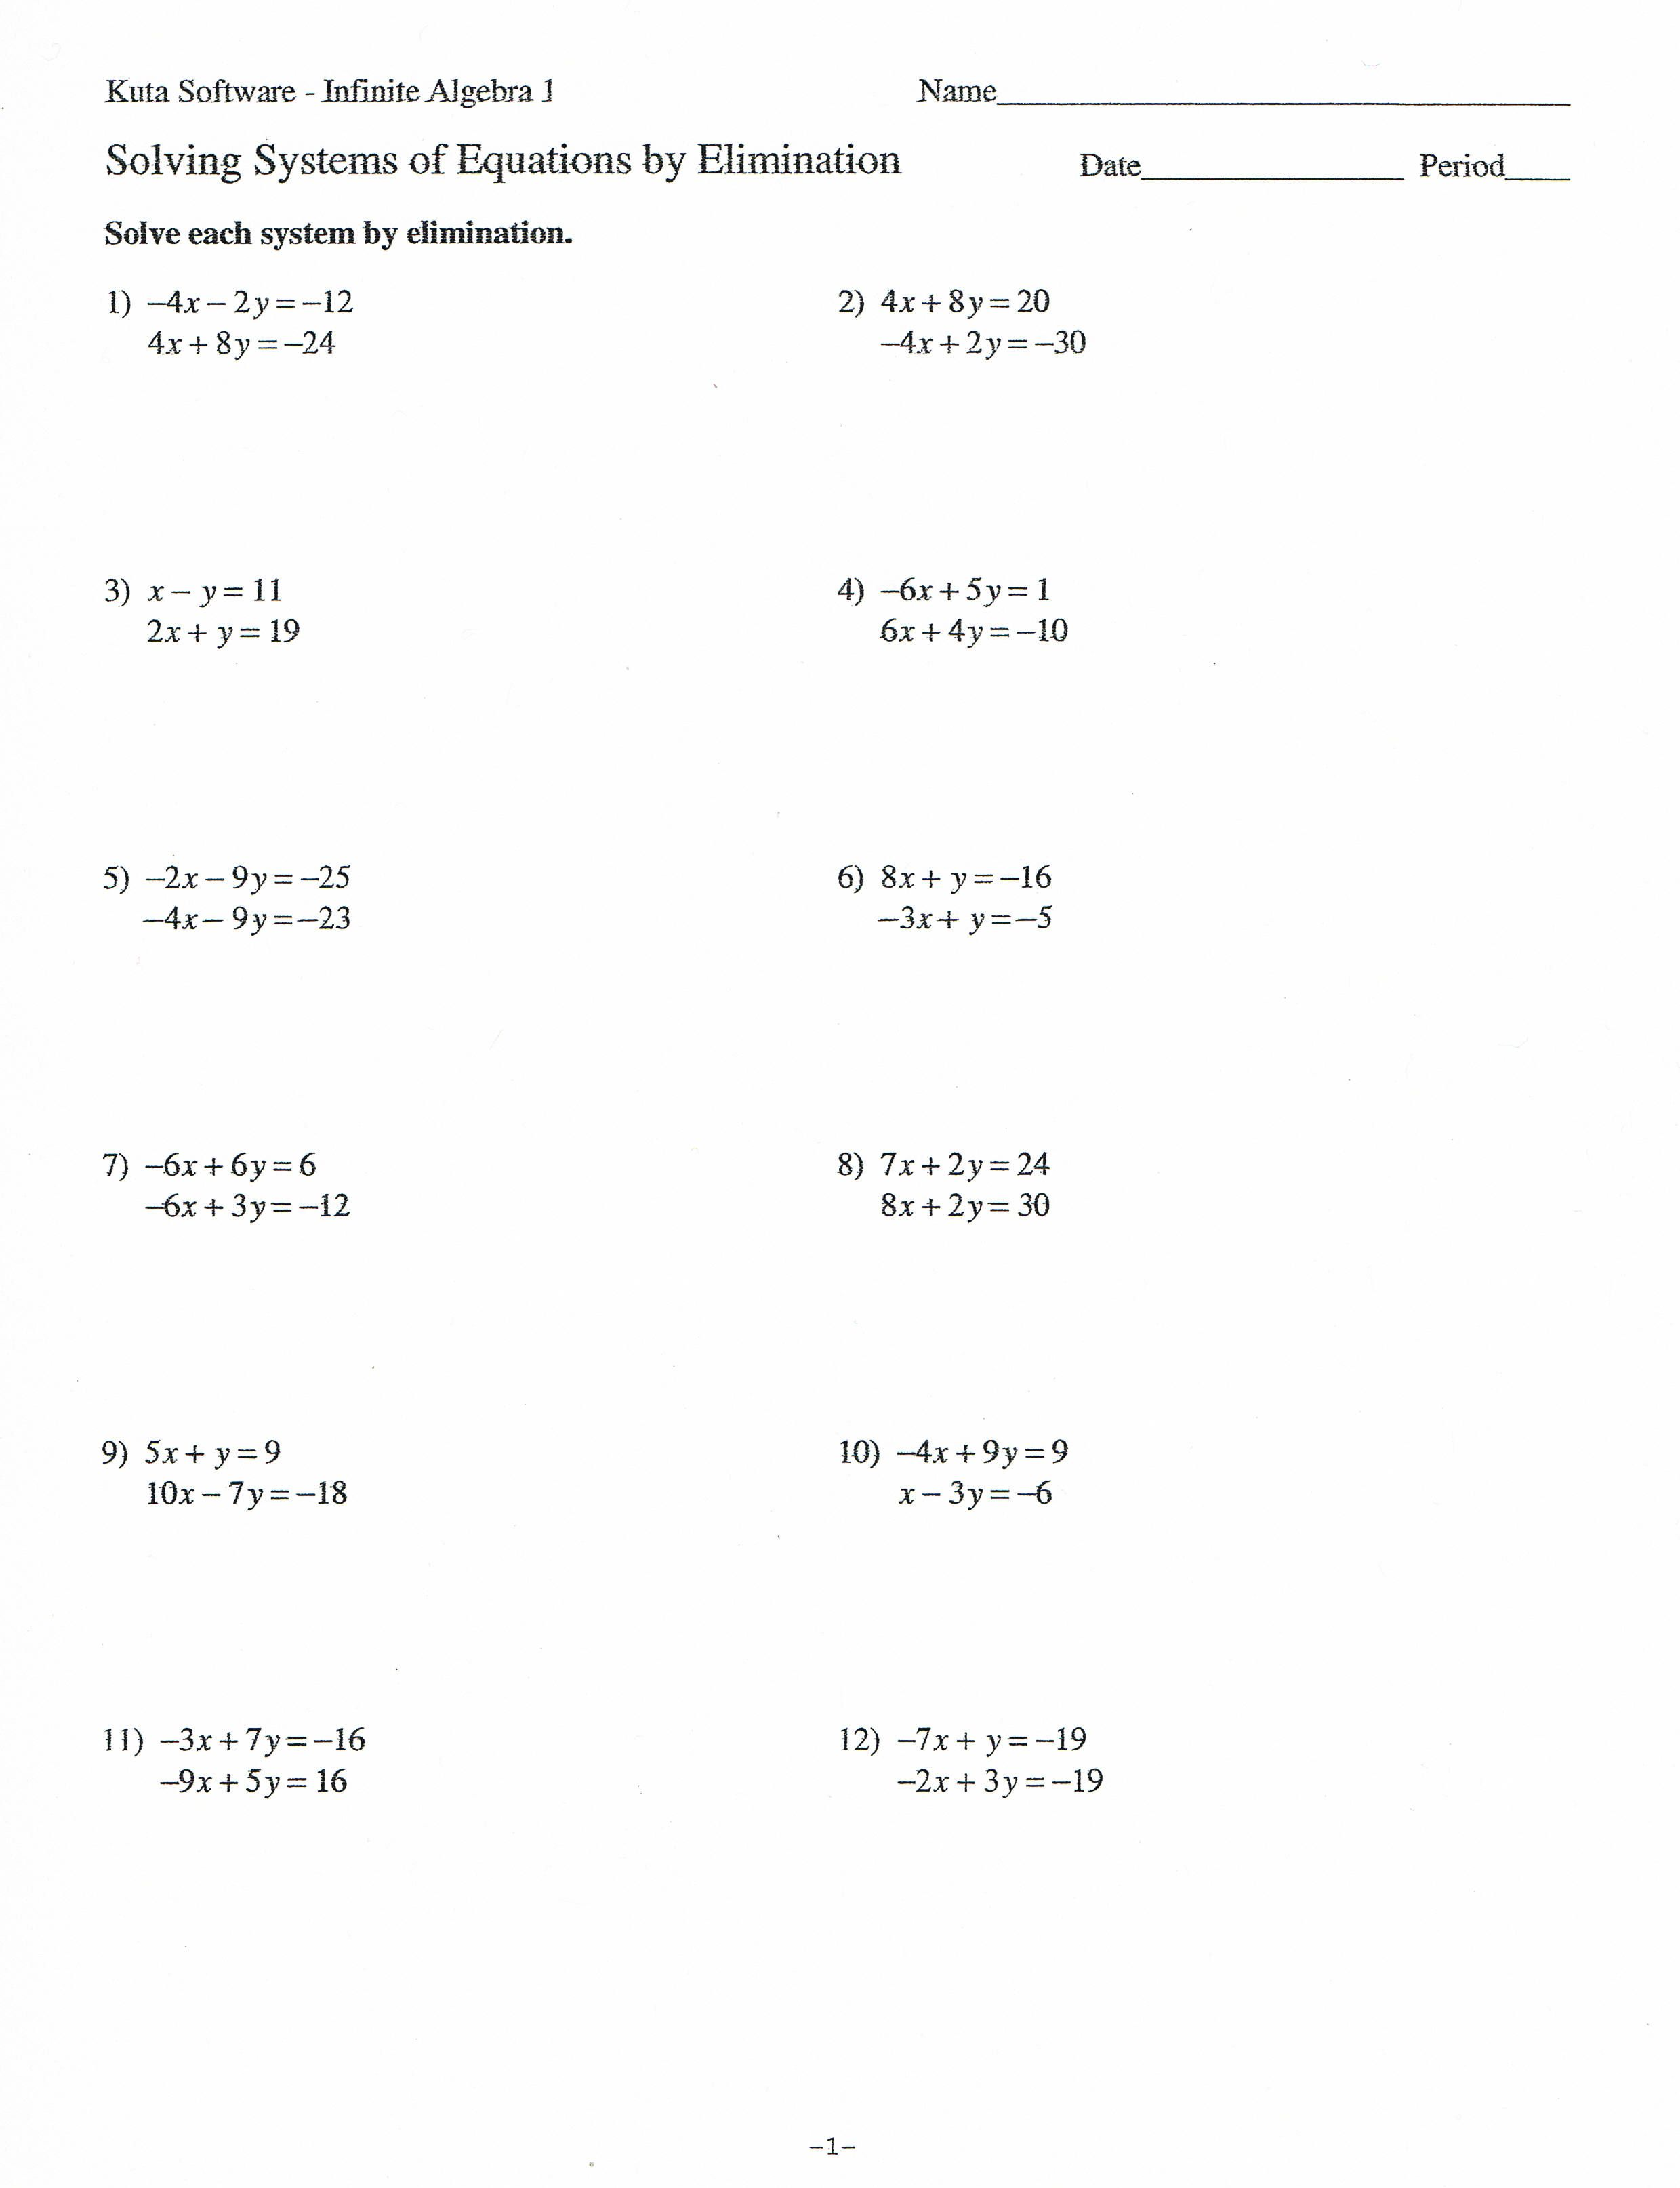 Solving Systems Of Equations By Elimination Worksheet The